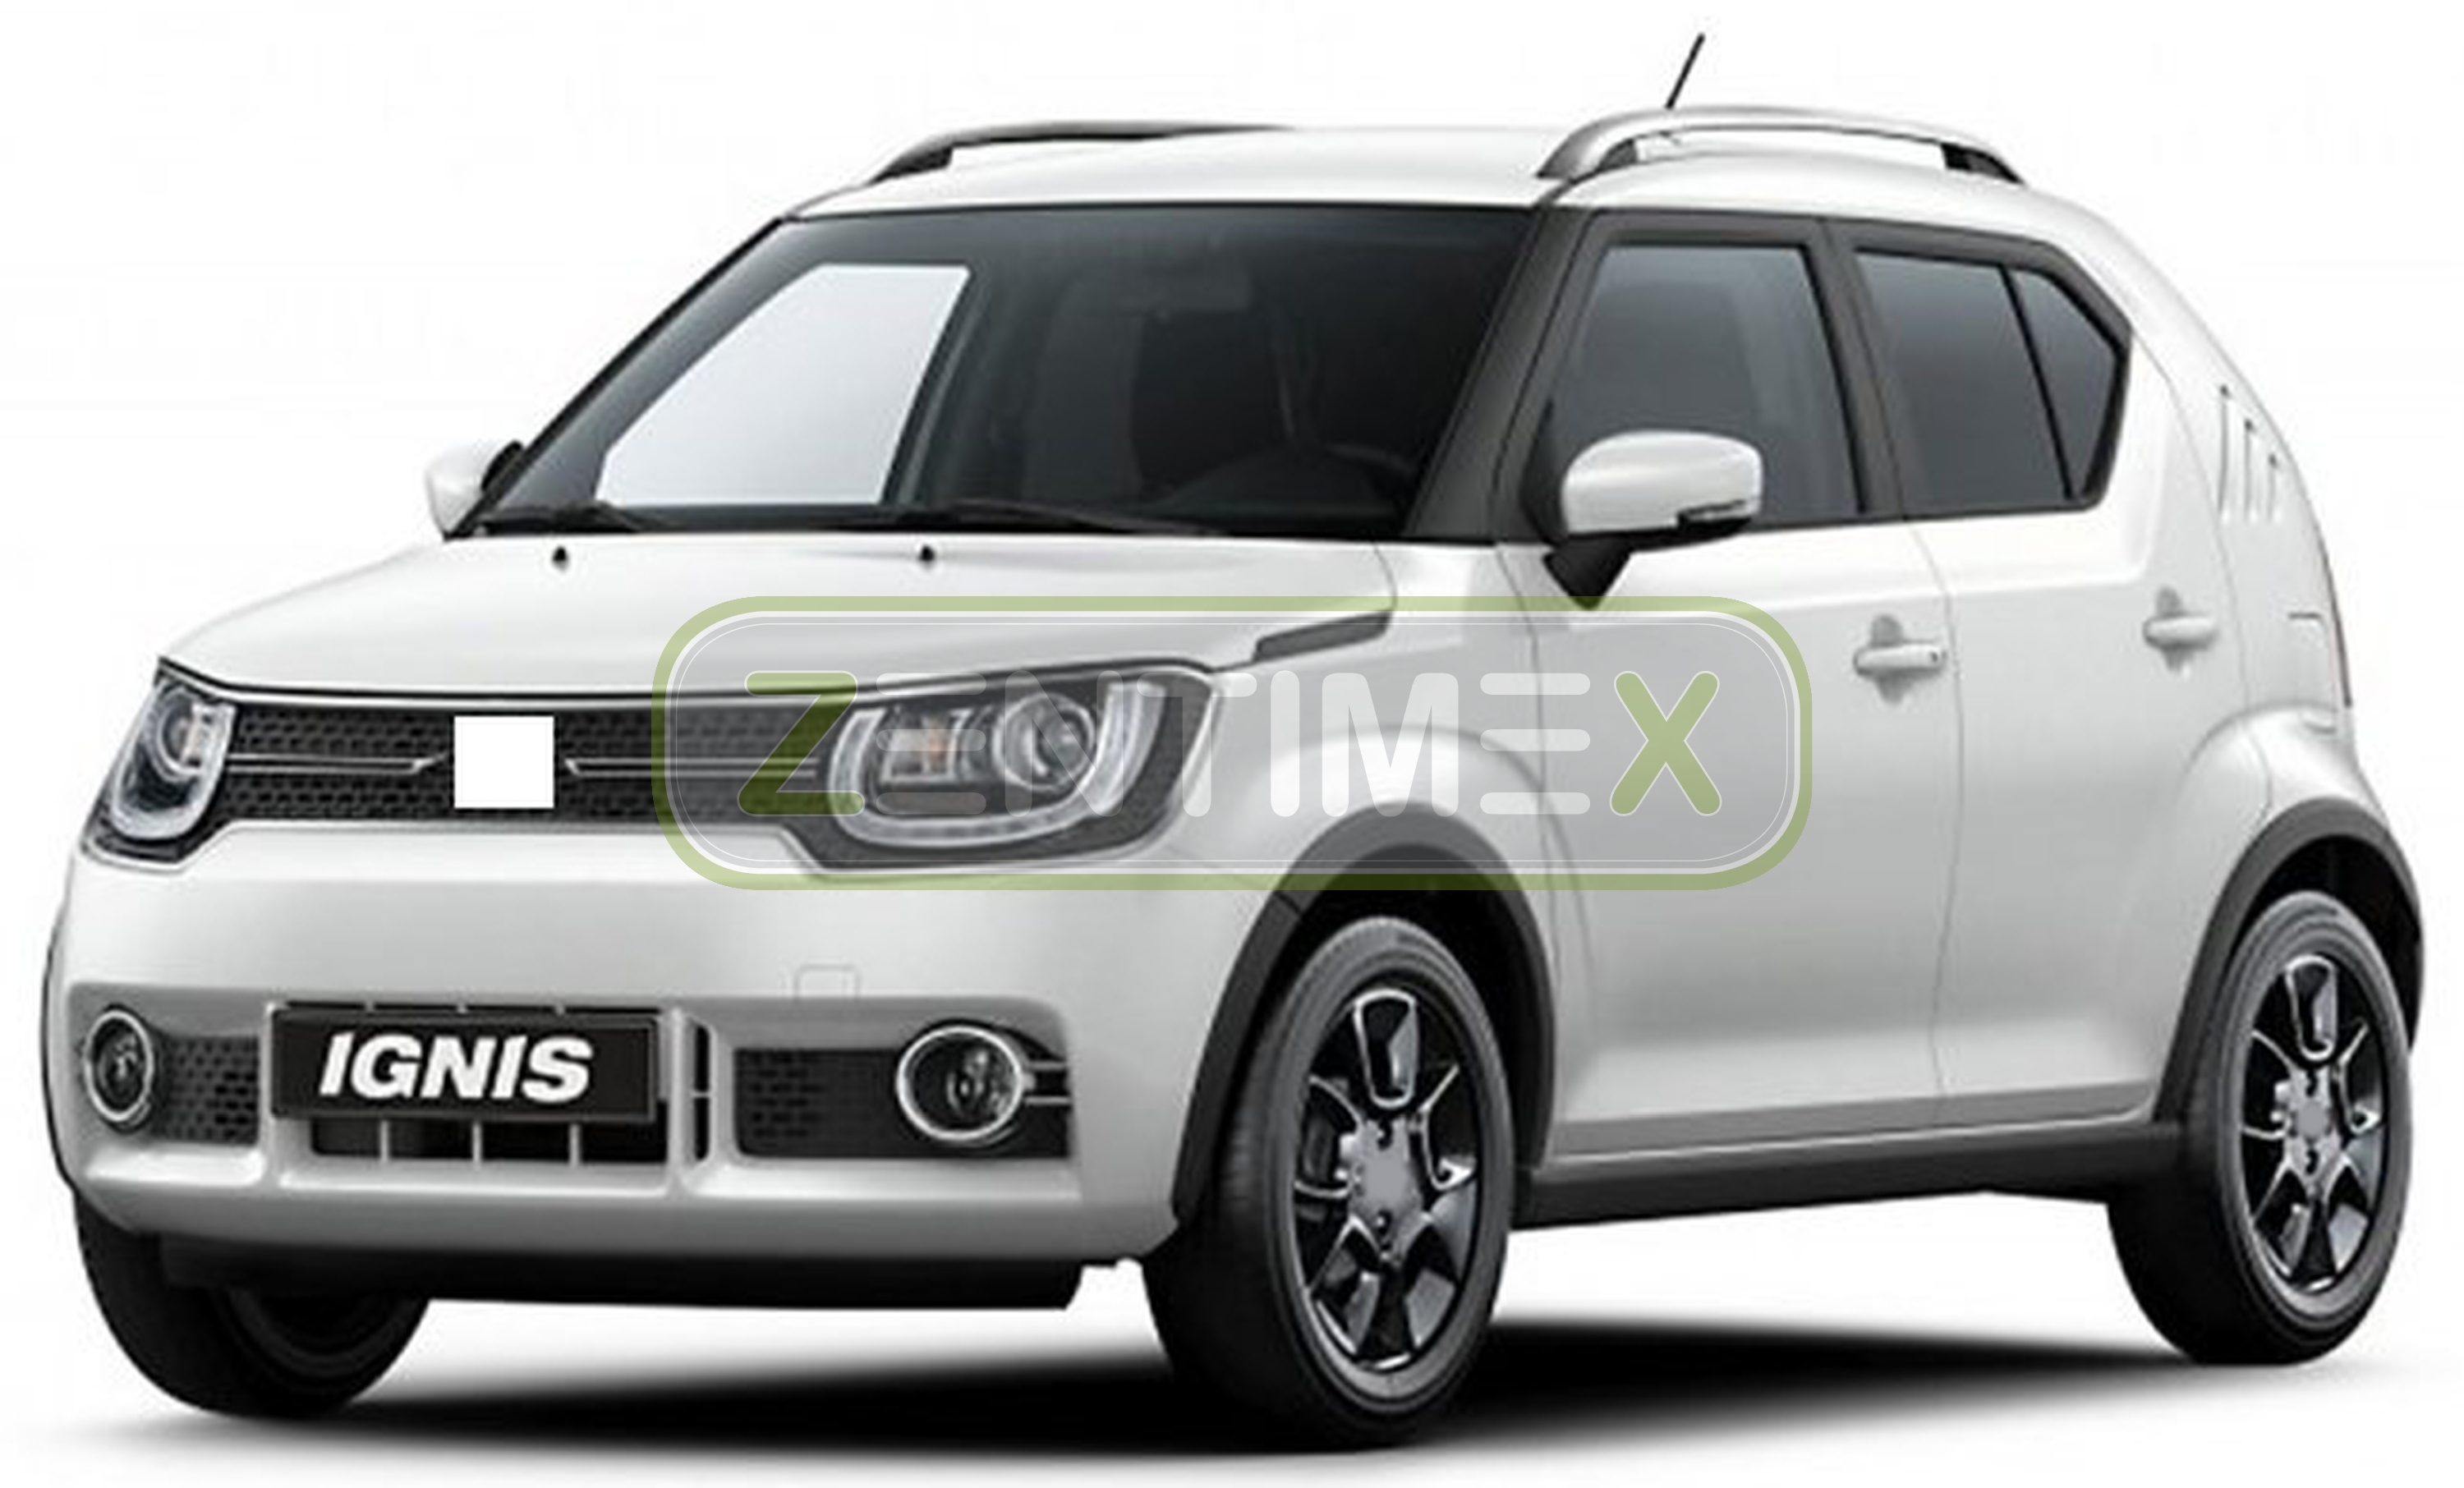 vasca baule bagagliaio per suzuki ignis comfort 3 suv 5porte 2016 sedile pos40 ebay. Black Bedroom Furniture Sets. Home Design Ideas